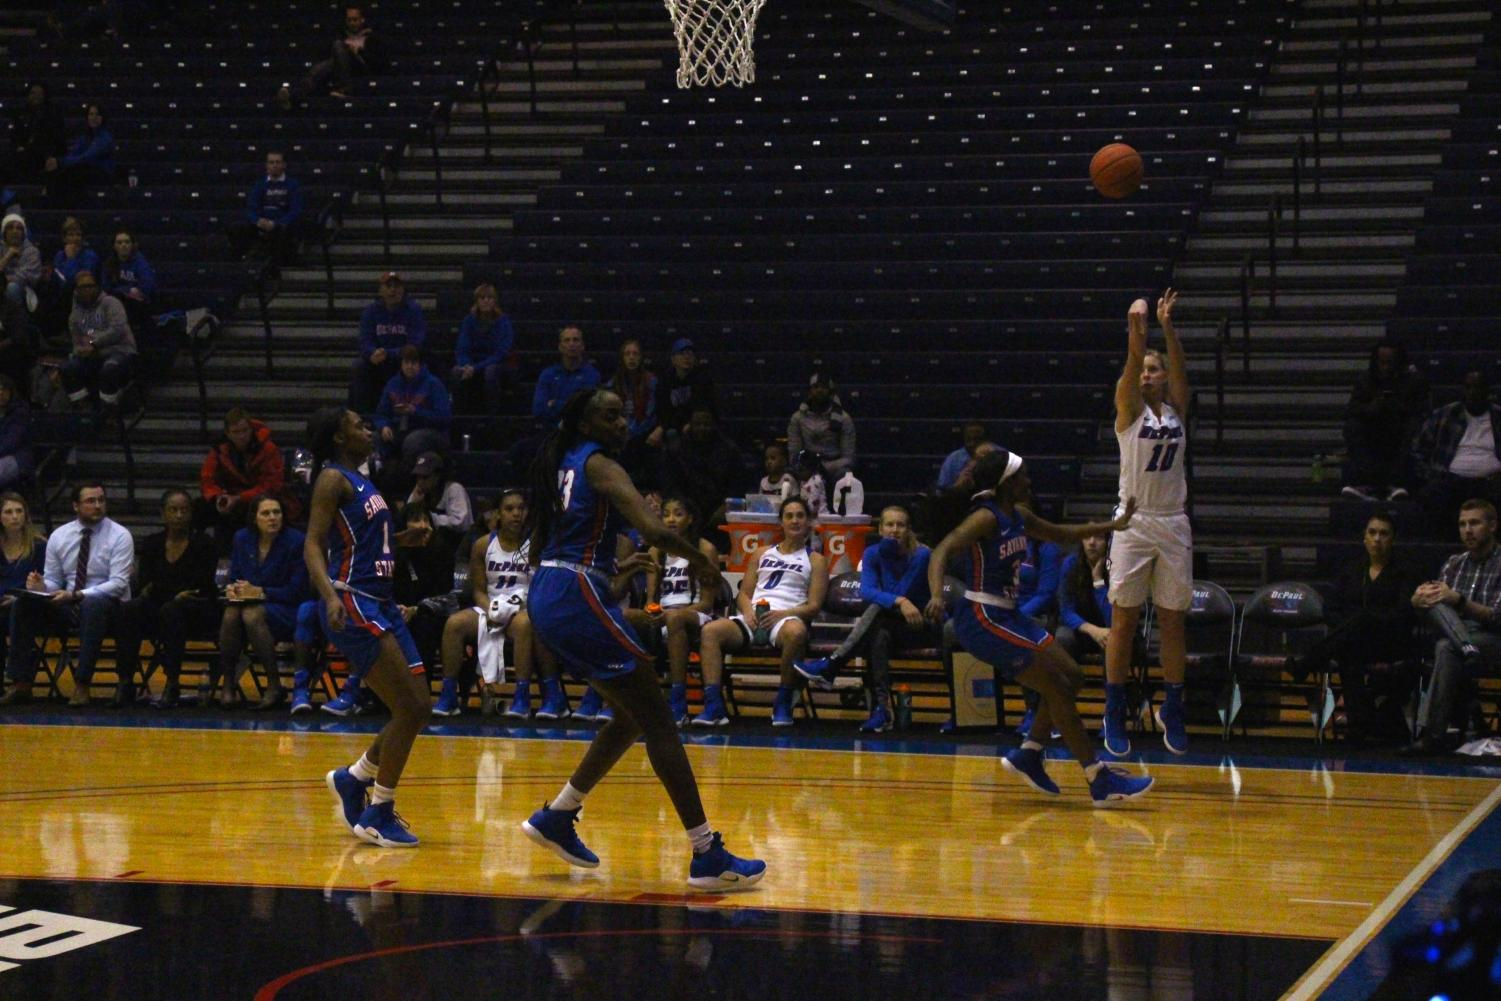 Freshman guard Lexi Held attempts a 3-point shot Monday night in DePaul's 124-61 victory over Savannah State. Andrew Hattersley | The DePaulia